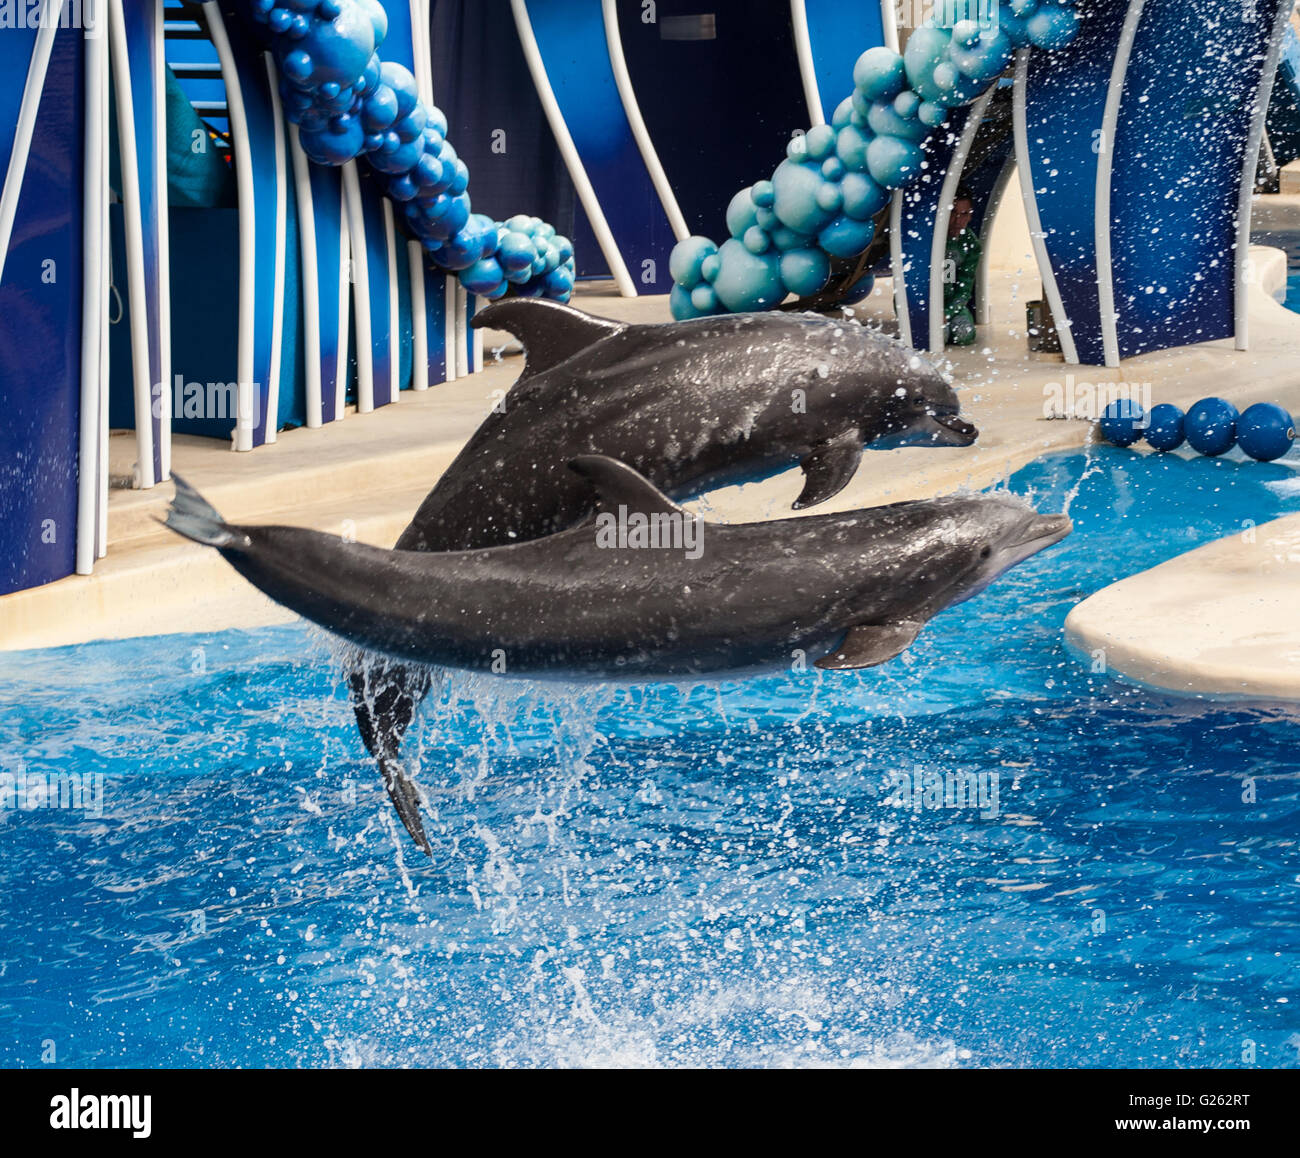 Dolphins at sea world - Stock Image